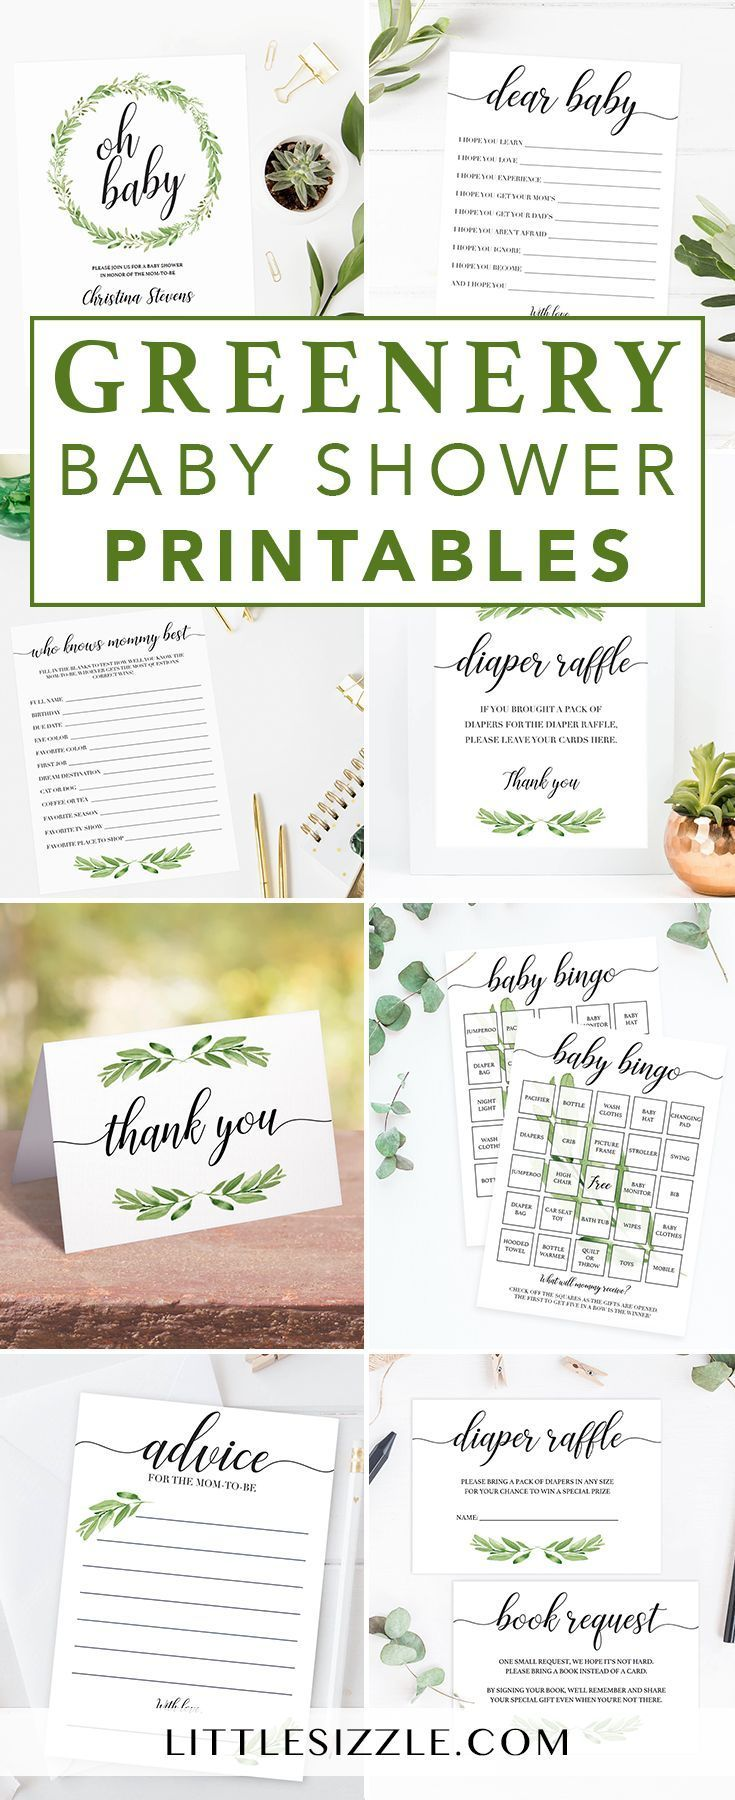 Greenery themed baby showers are on trend at the moment and we can totally understand why. Find unique ideas and printables for your greenery themed baby shower. Green Leaf baby shower games and green baby shower invitations by LittleSizzle. A greenery&#1